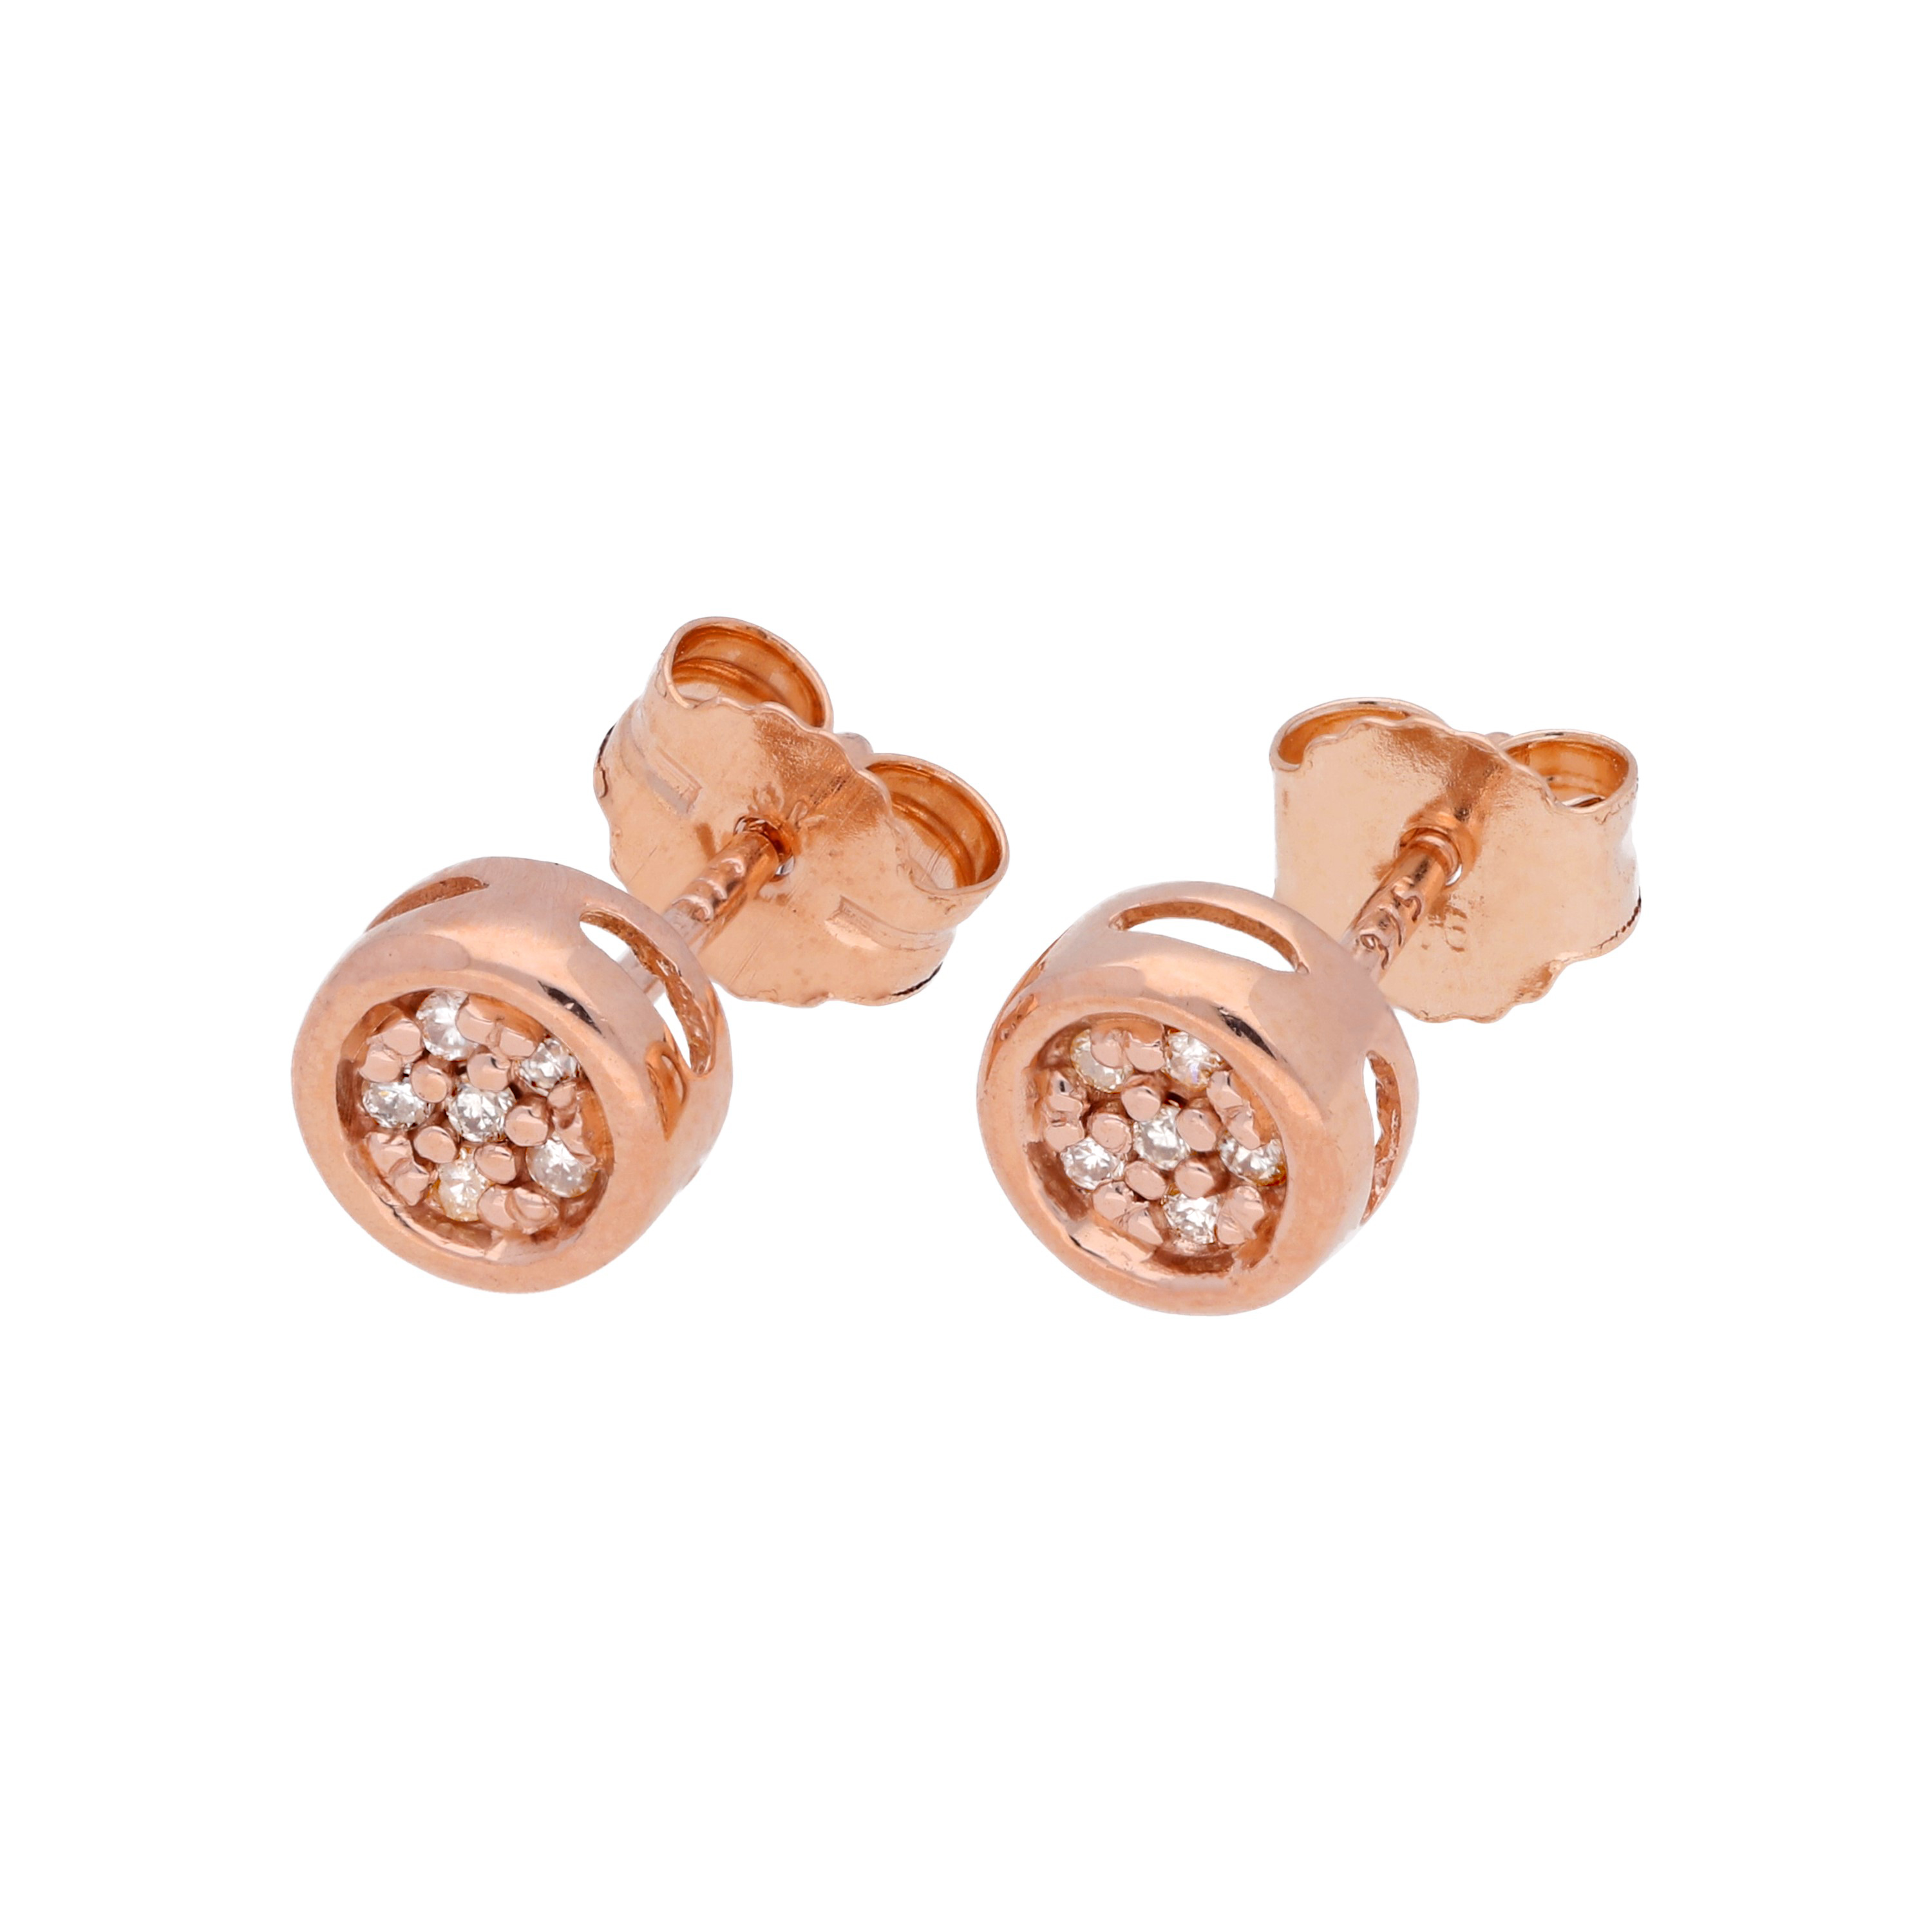 An image of 0 054ct Diamond 9ct Rose Gold Cluster Stud Earrings